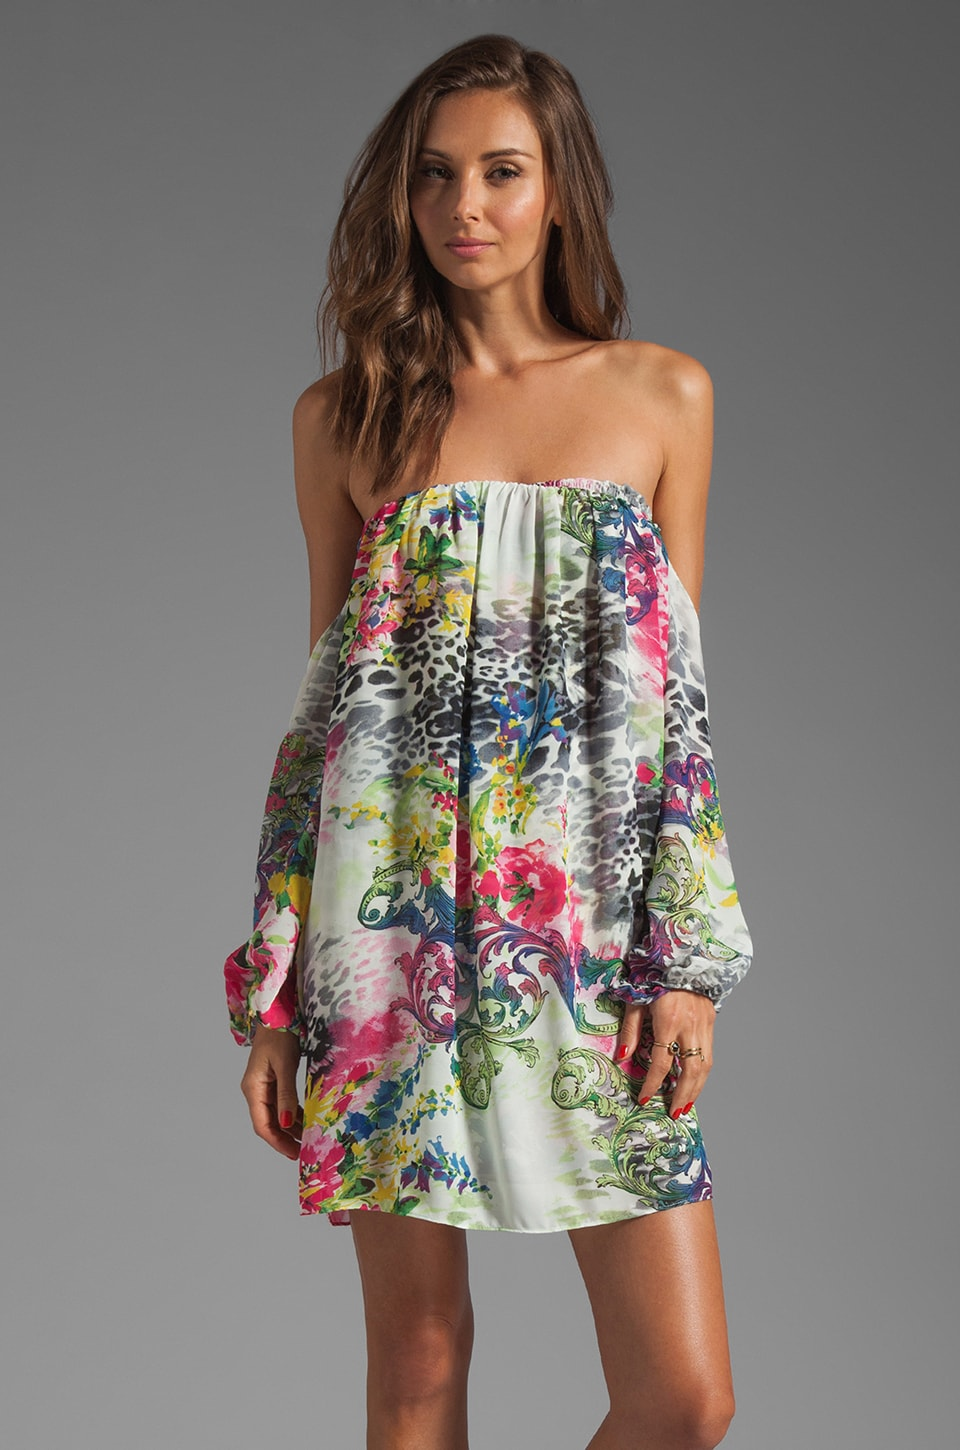 T-Bags LosAngeles Cut Out Sleeve Dress in Floral